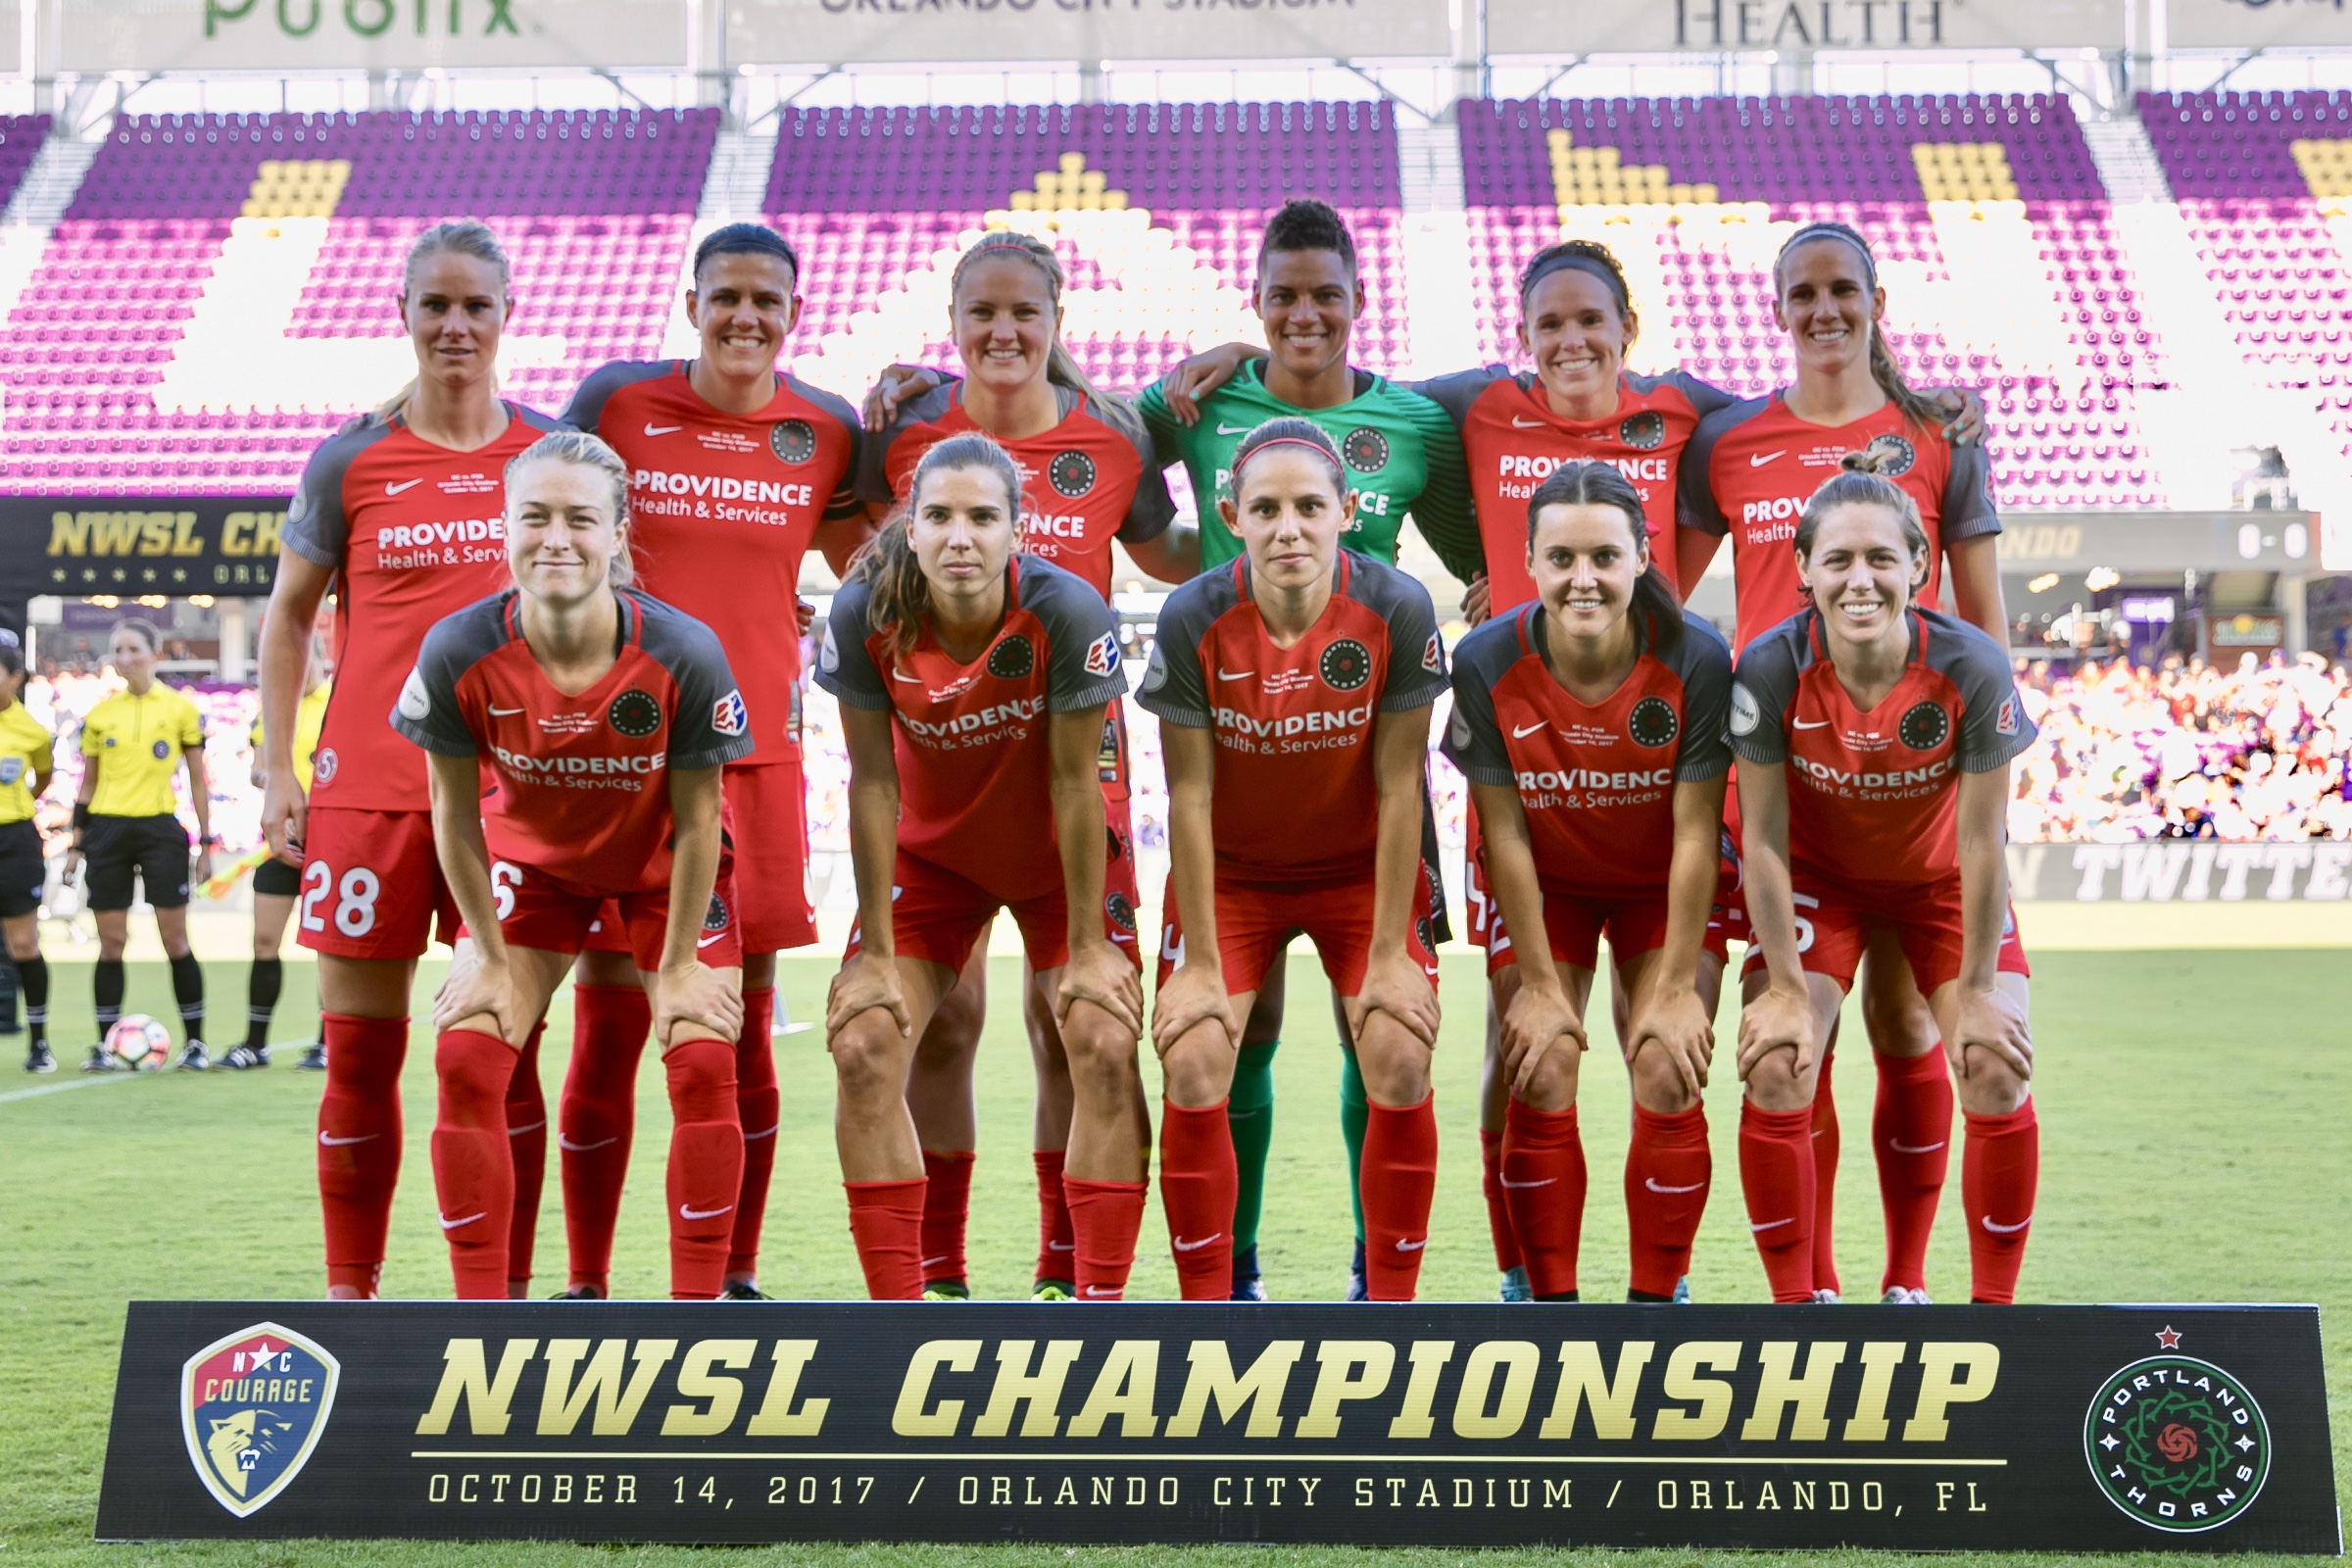 Your 2017 NWSL Championship starters for the Portland Thorns. Photo: @BDZsports